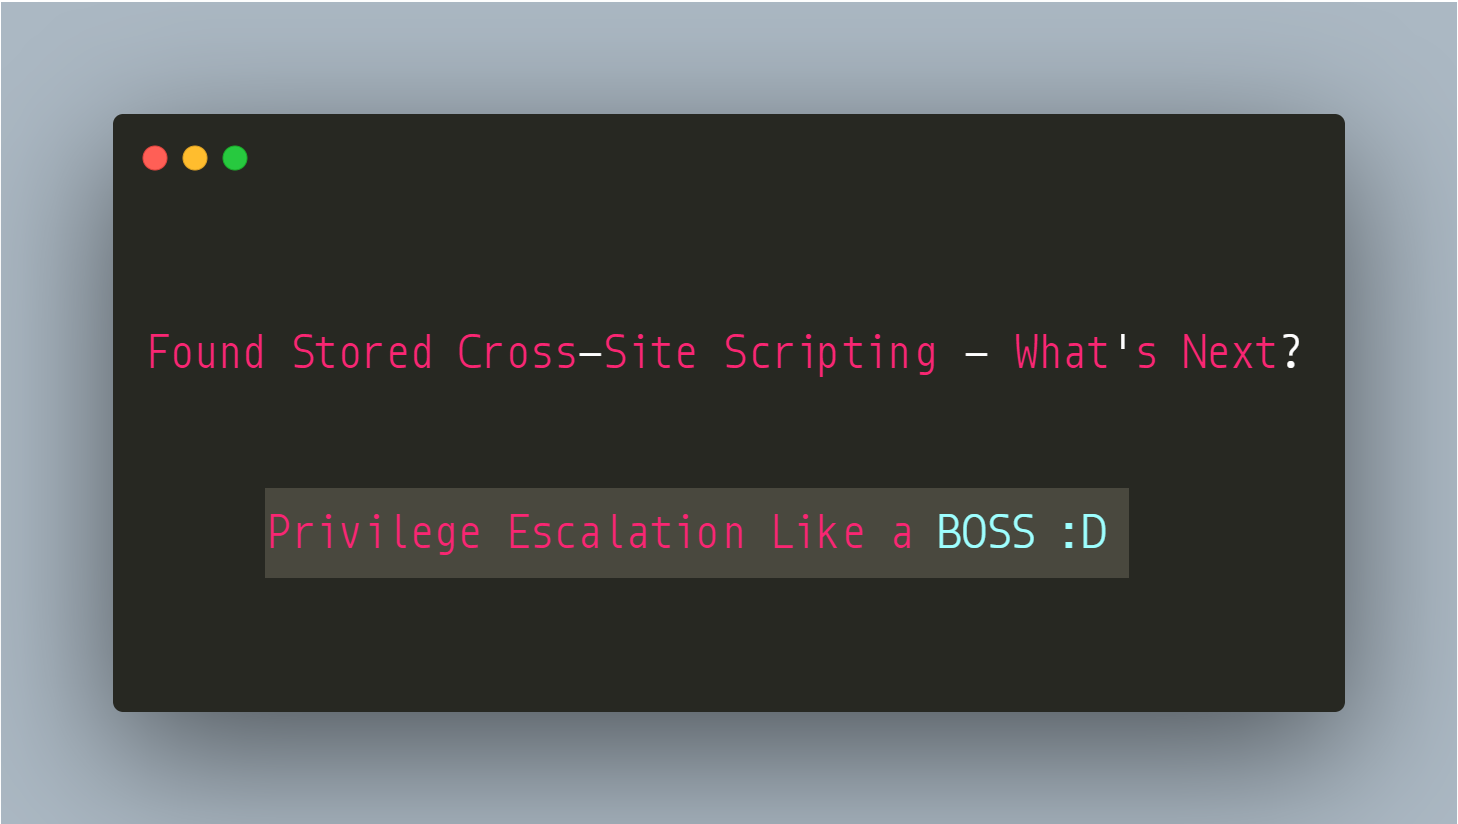 Found Stored Cross-Site Scripting — What's Next? — Privilege Escalation like a Boss :D